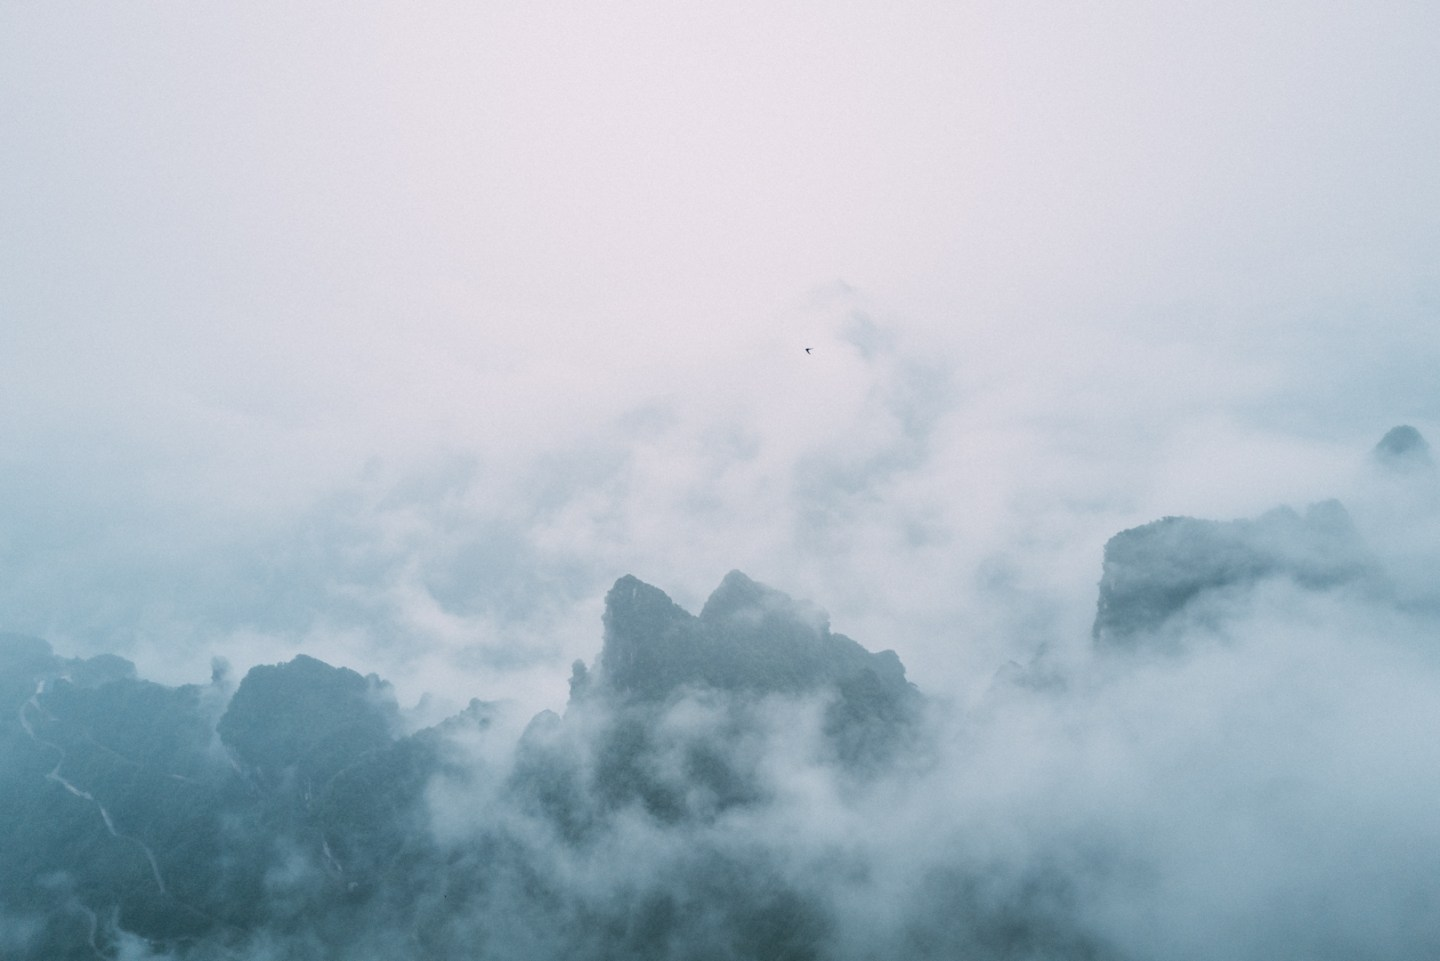 photo of the mountains with fog and a bird flying far away